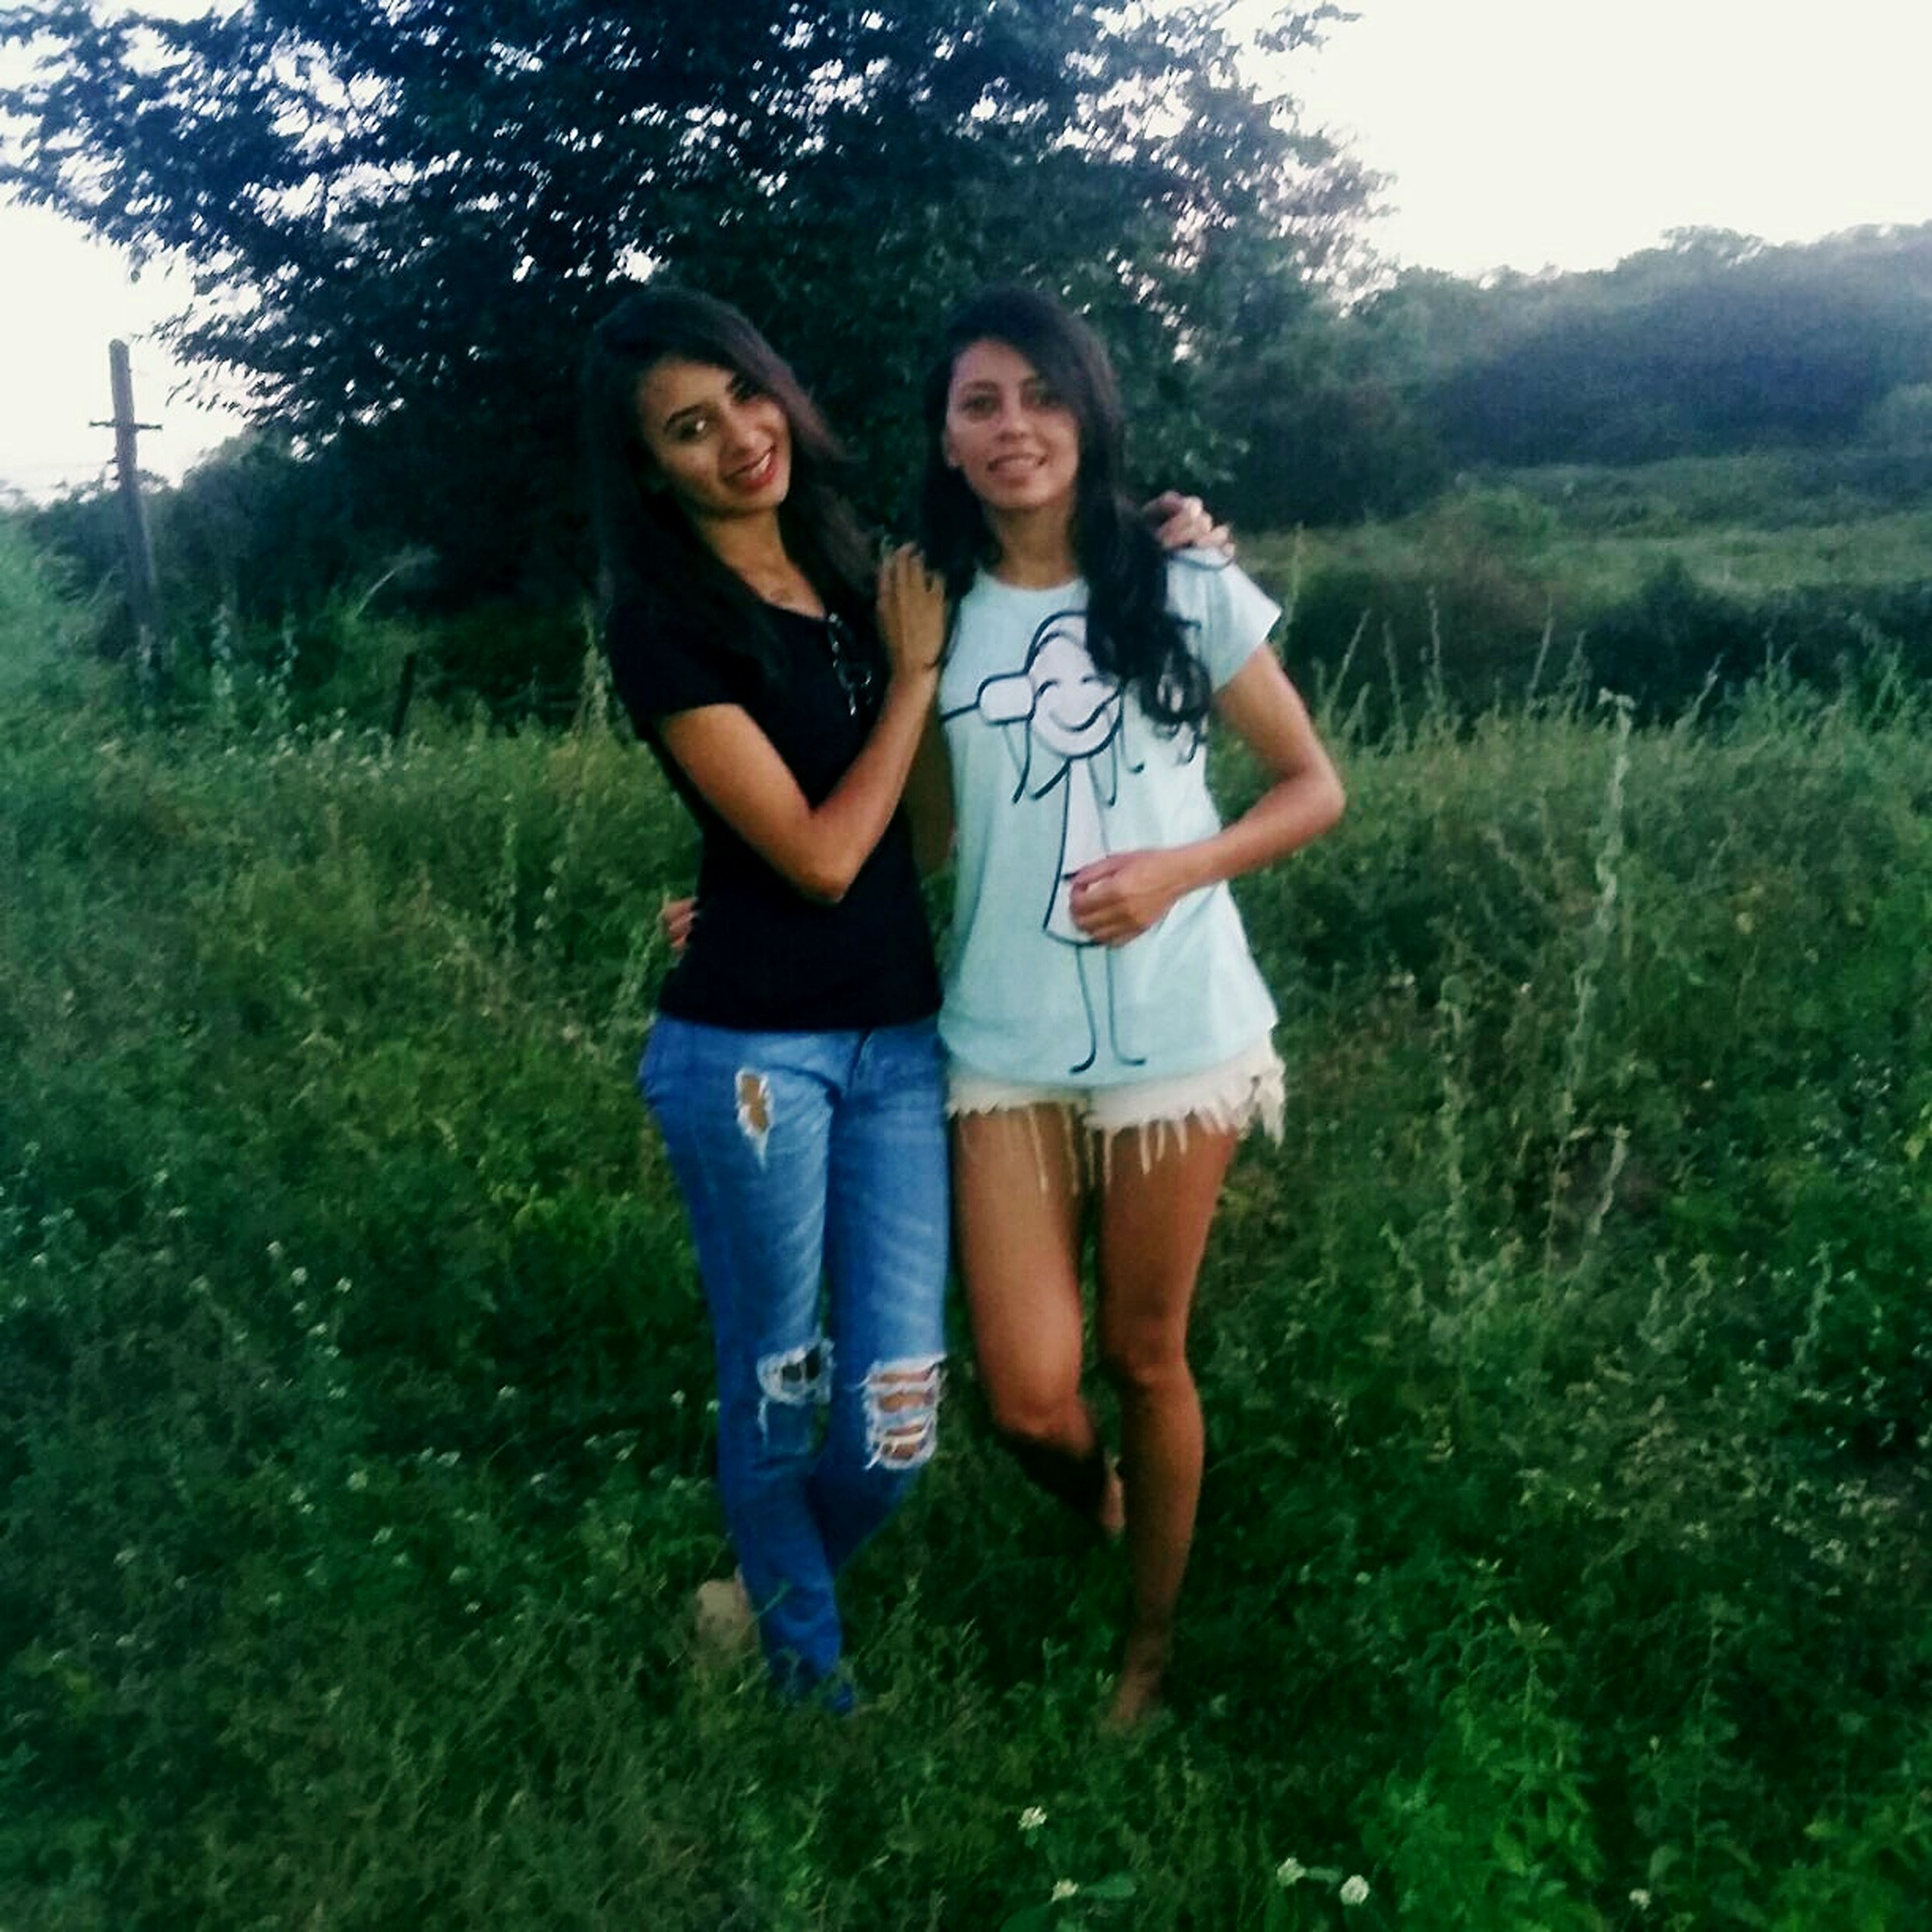 grass, casual clothing, real people, full length, front view, standing, togetherness, smiling, happiness, leisure activity, two people, young women, young adult, outdoors, day, bonding, tree, lifestyles, growth, friendship, looking at camera, nature, portrait